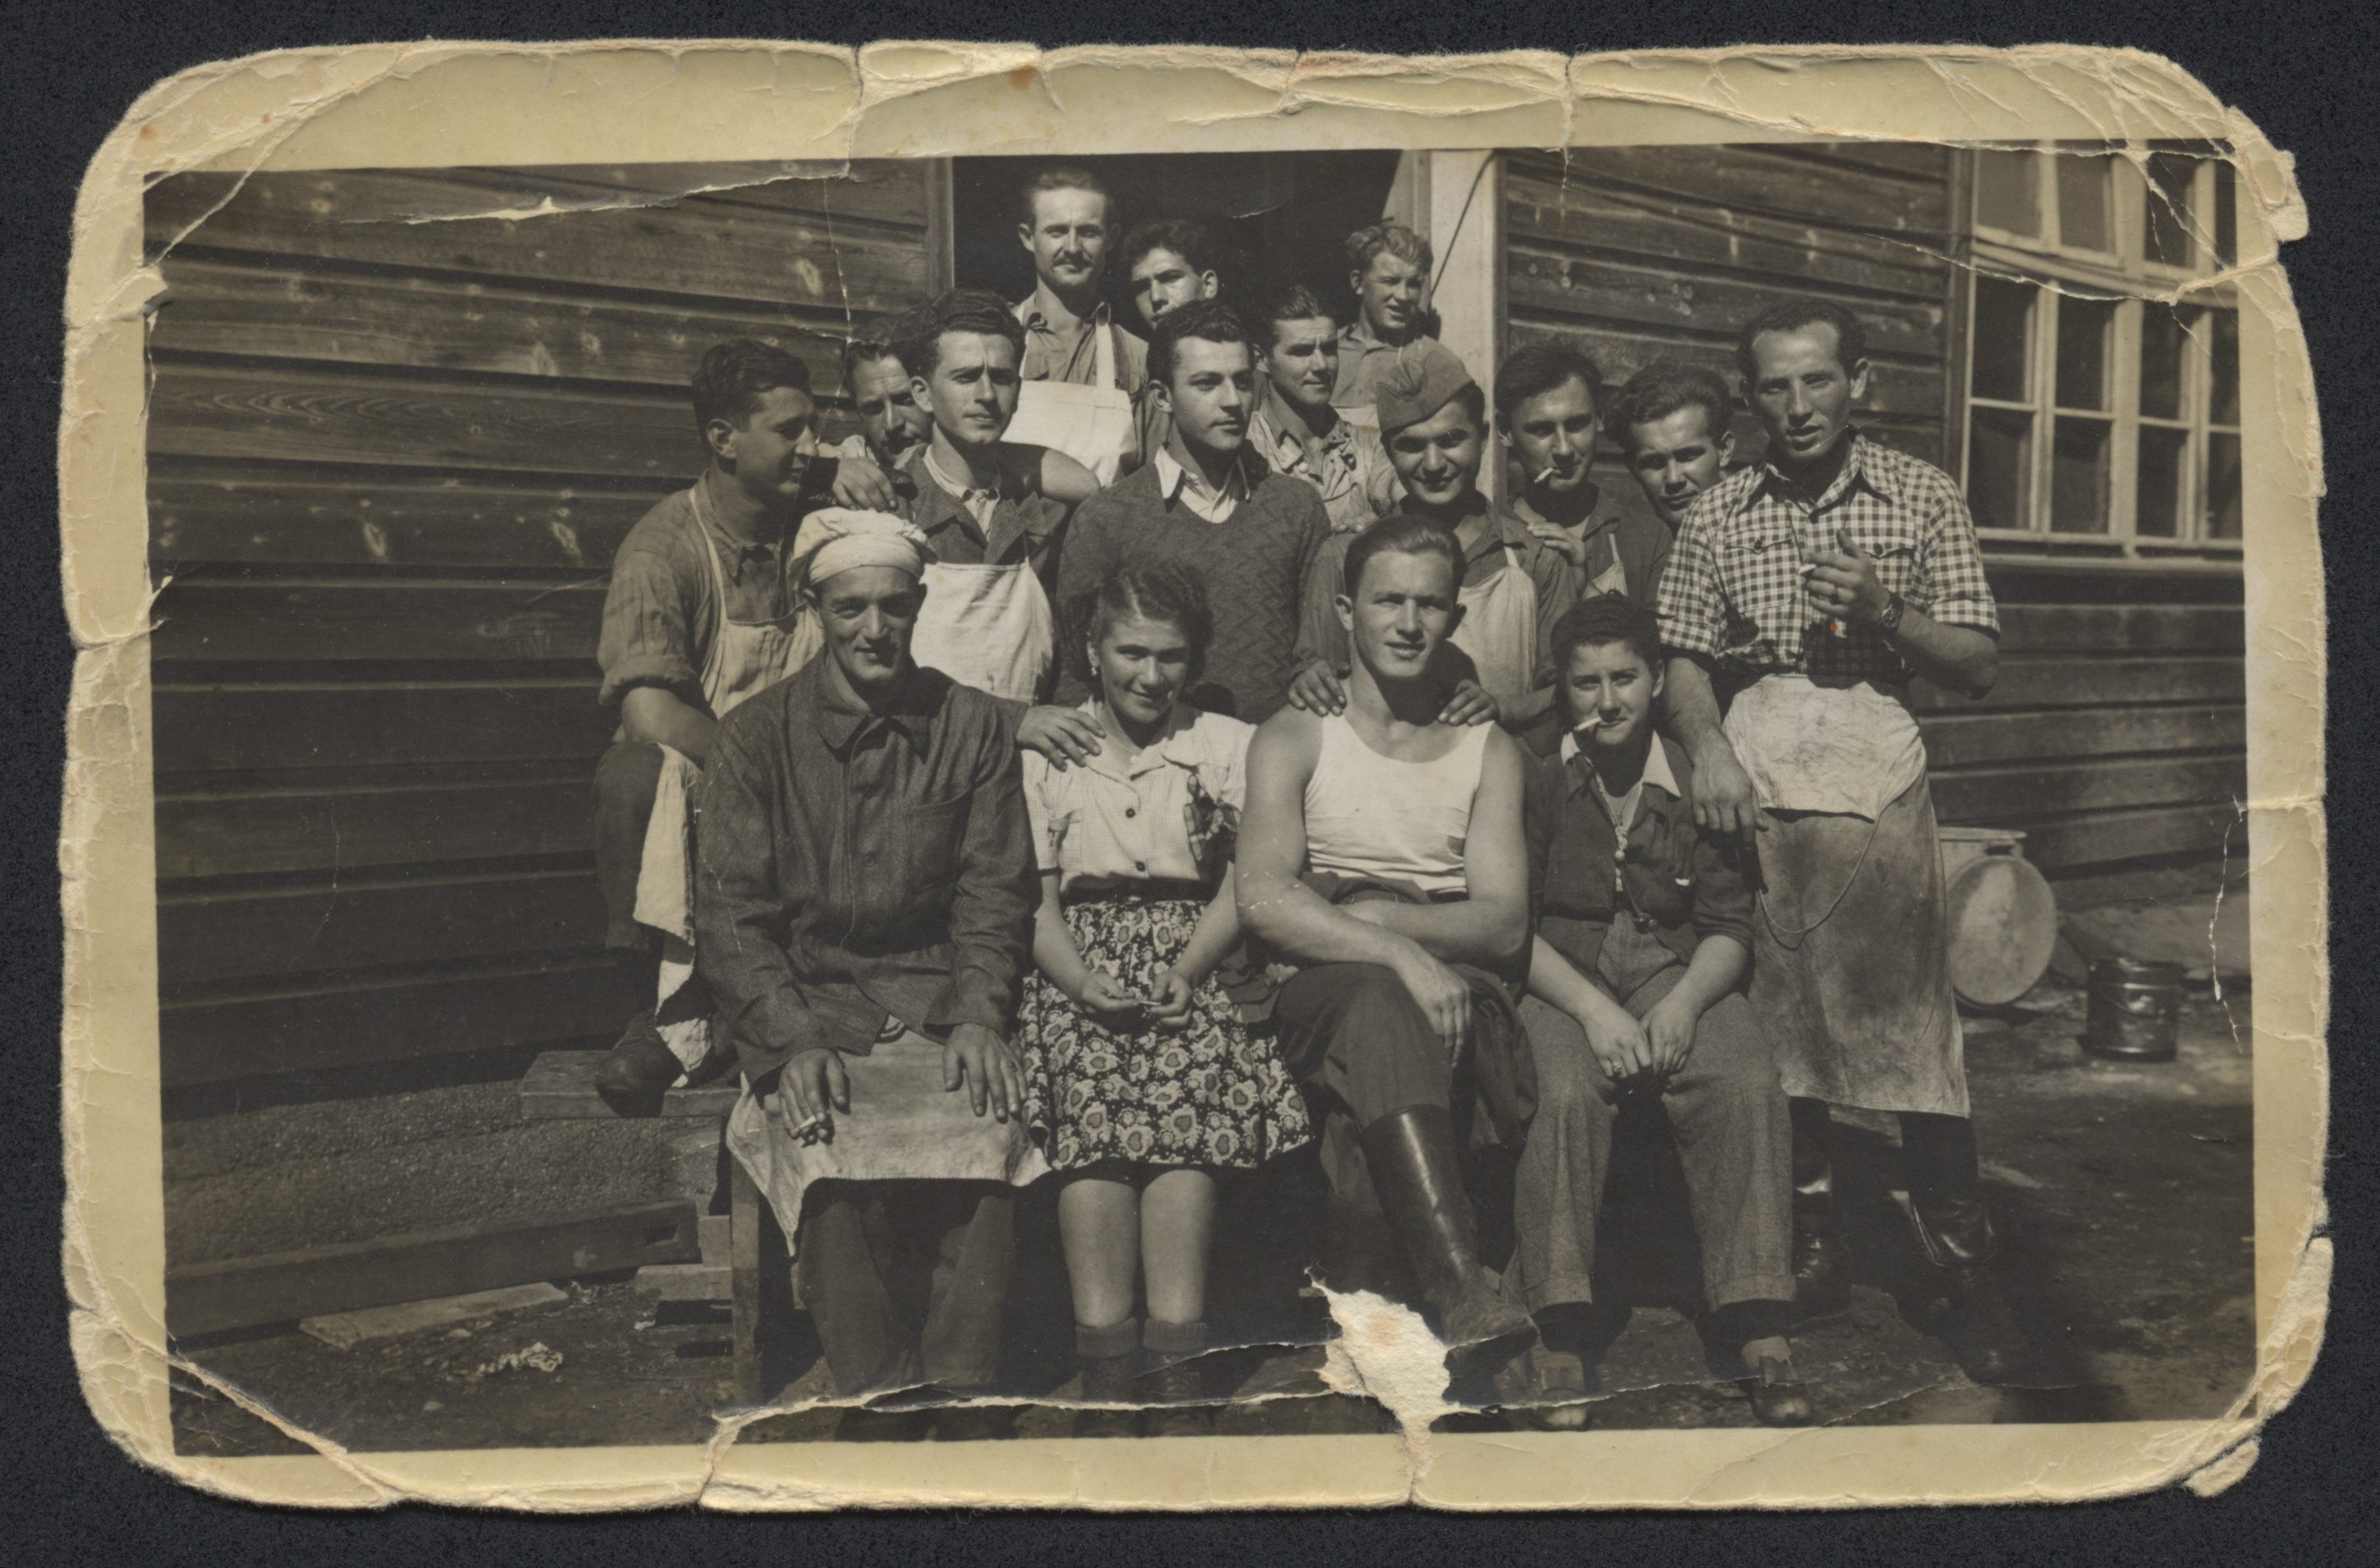 Group portrait of men and women, many wearing cook's aprons, pose outside a wooden barrack in the Bindermichl displaced persons camp.  William Abraham is in the center wearing a cap.  He worked in the camp kitchen.